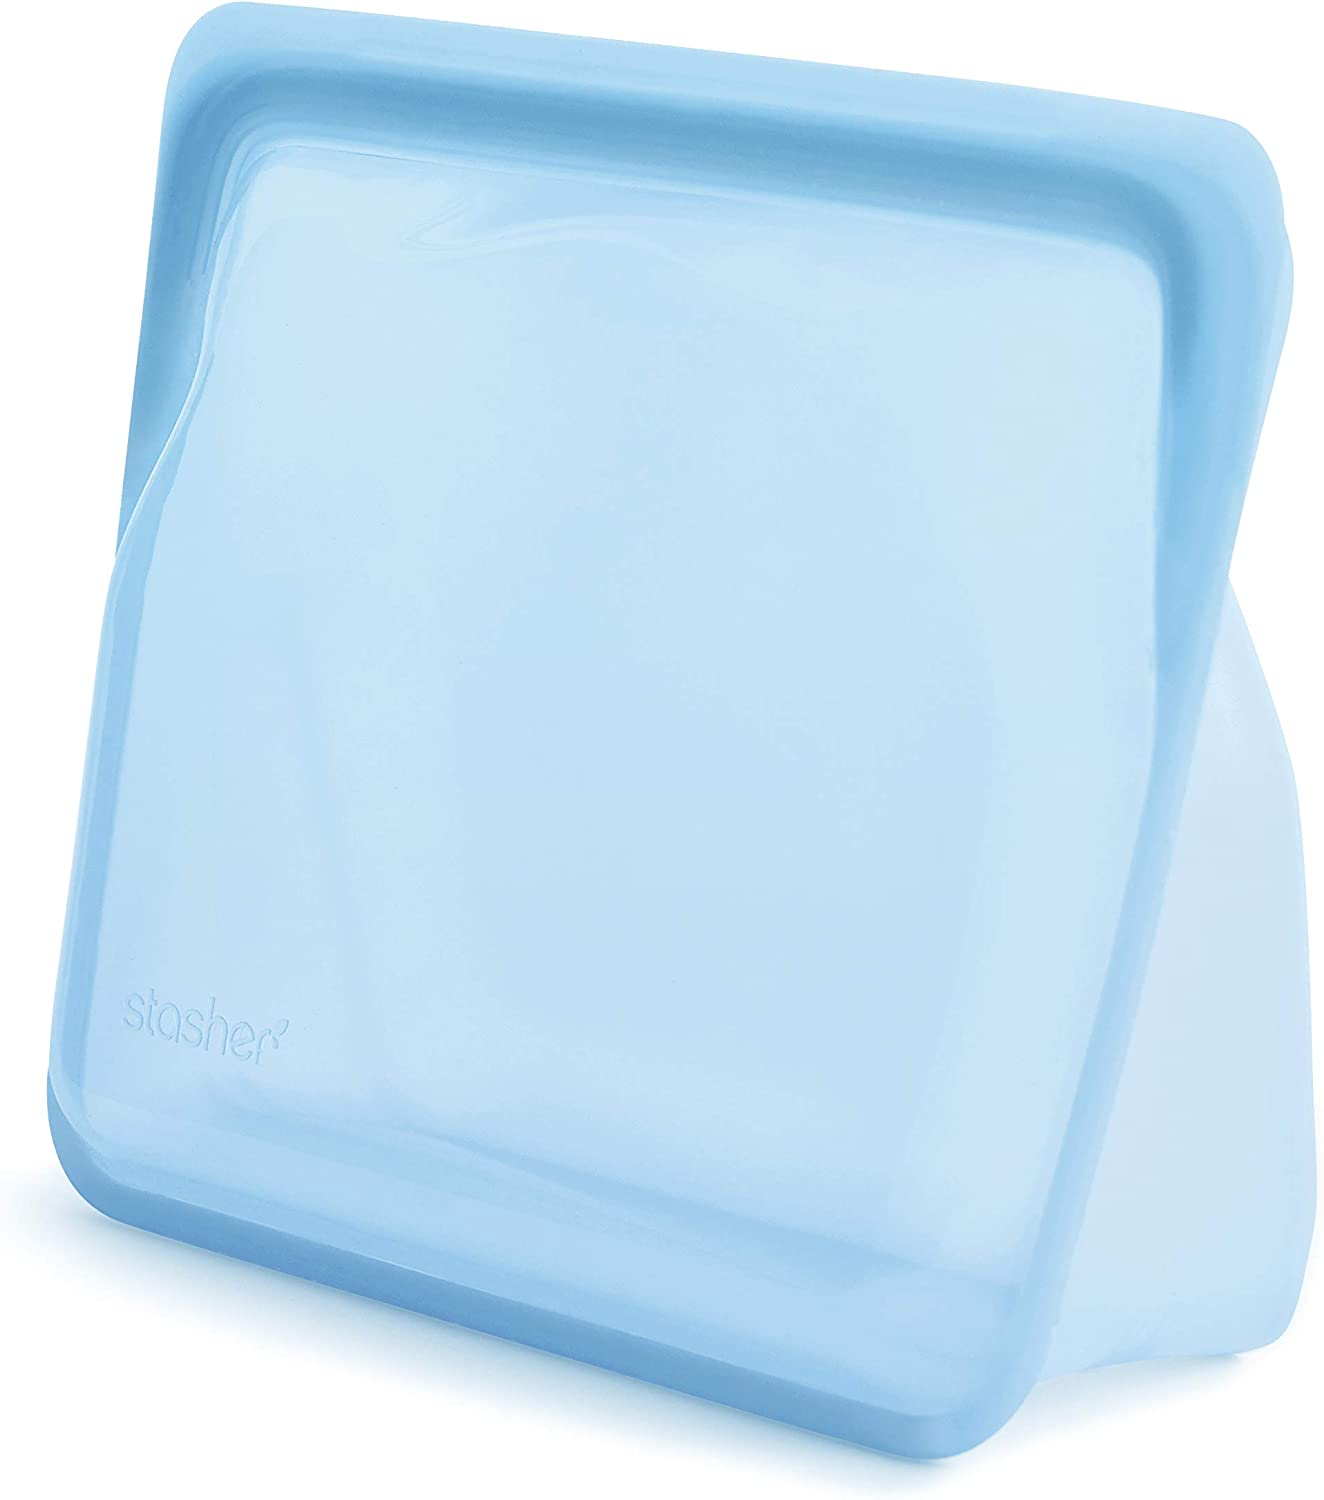 Stasher Platinum Silicone Food Grade Reusable Storage Bag, Blue (Stand-Up Mid) | Reduce Single-Use Plastic | Cook, Store, Sous Vide, or Freeze | Leakproof, Dishwasher-Safe, Eco-friendly | 56 Oz